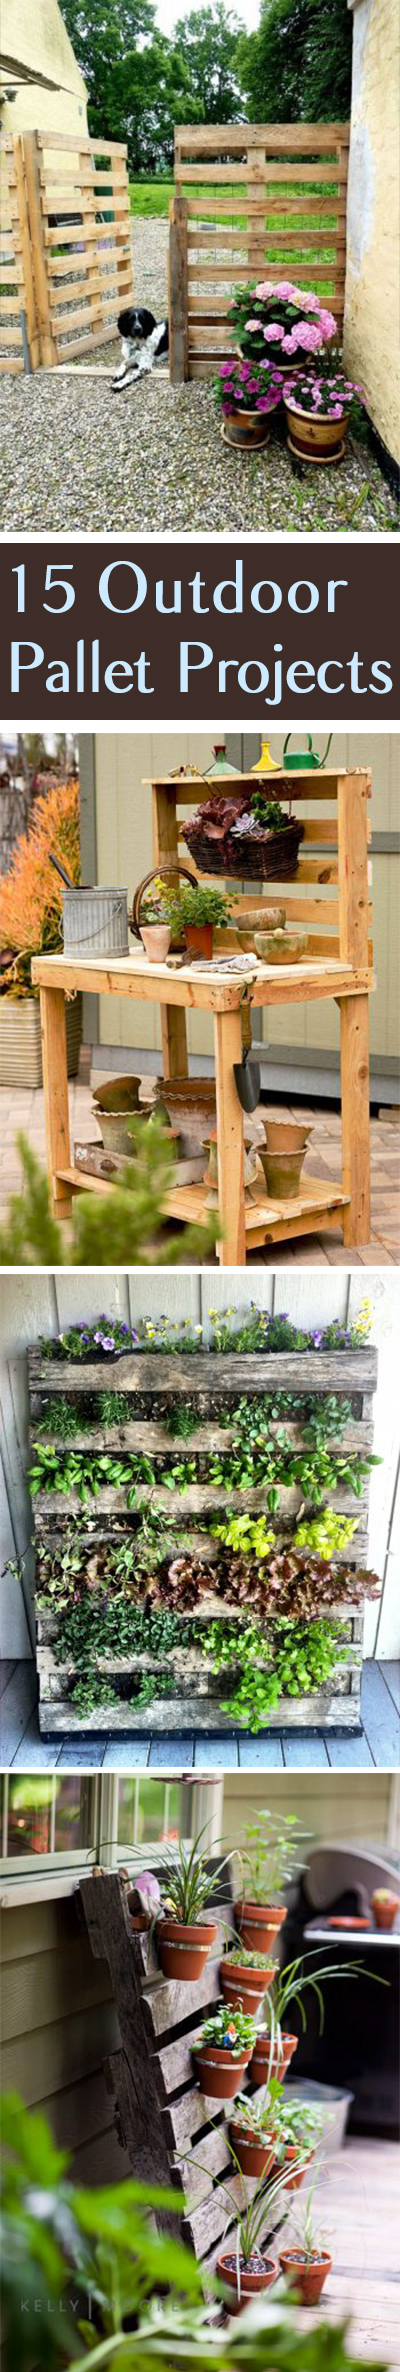 15 Outdoor Pallet Projects Bless My Weeds